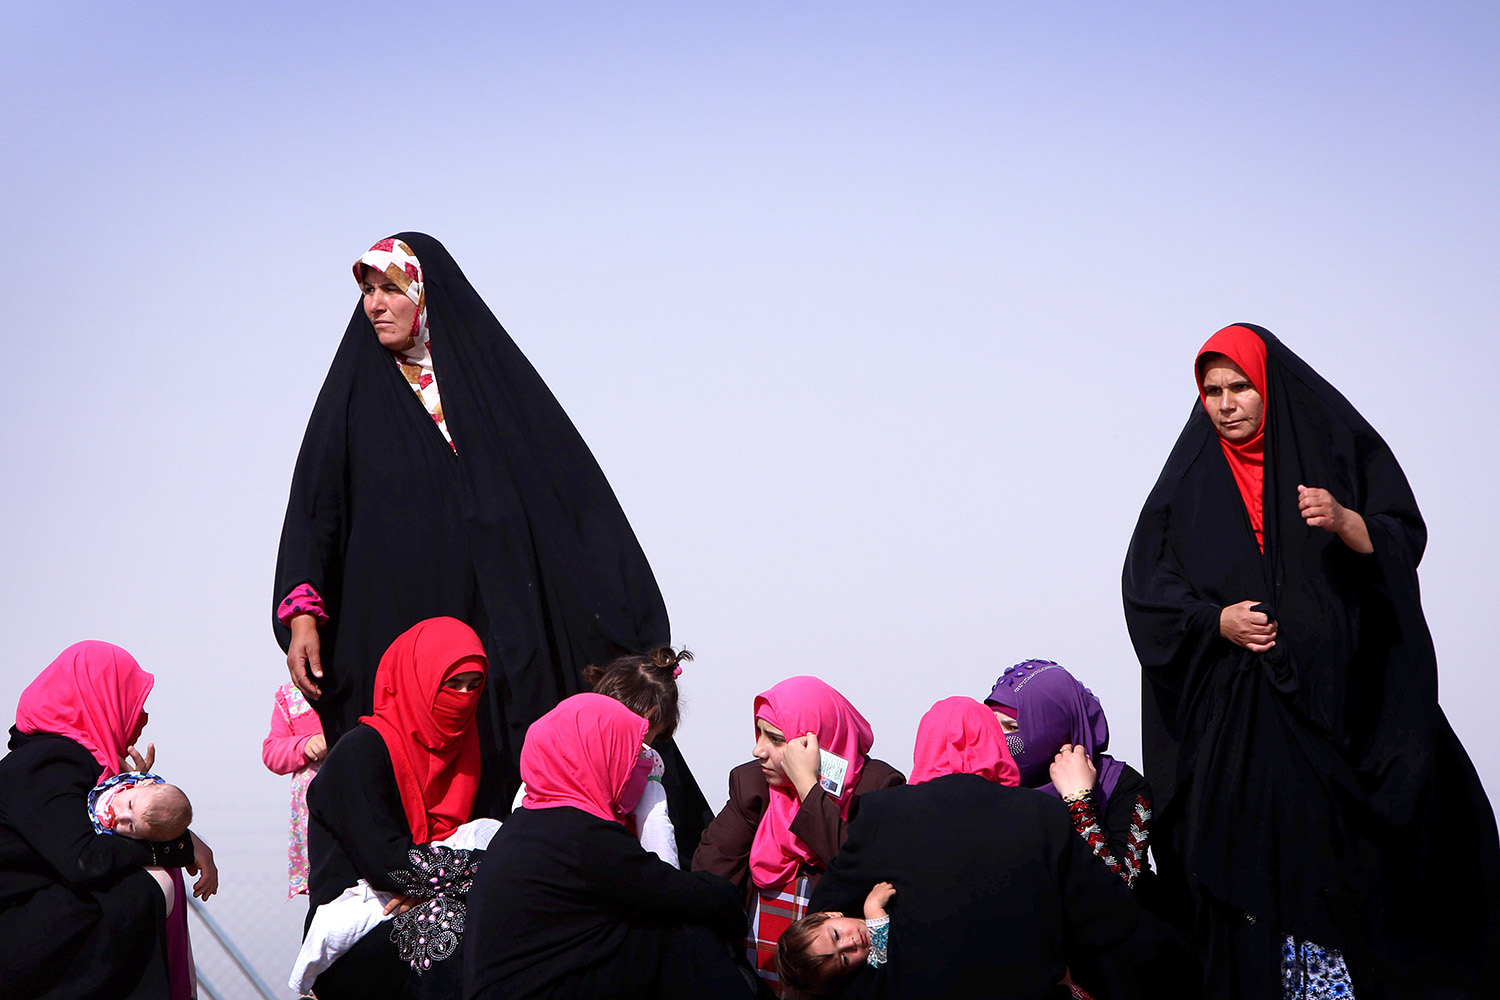 Iraqi women gather at a temporary camp set up to shelter civilians fleeing violence in northern Nineveh province in Aski Kalak, 25 miles west of Erbil, on June 13.